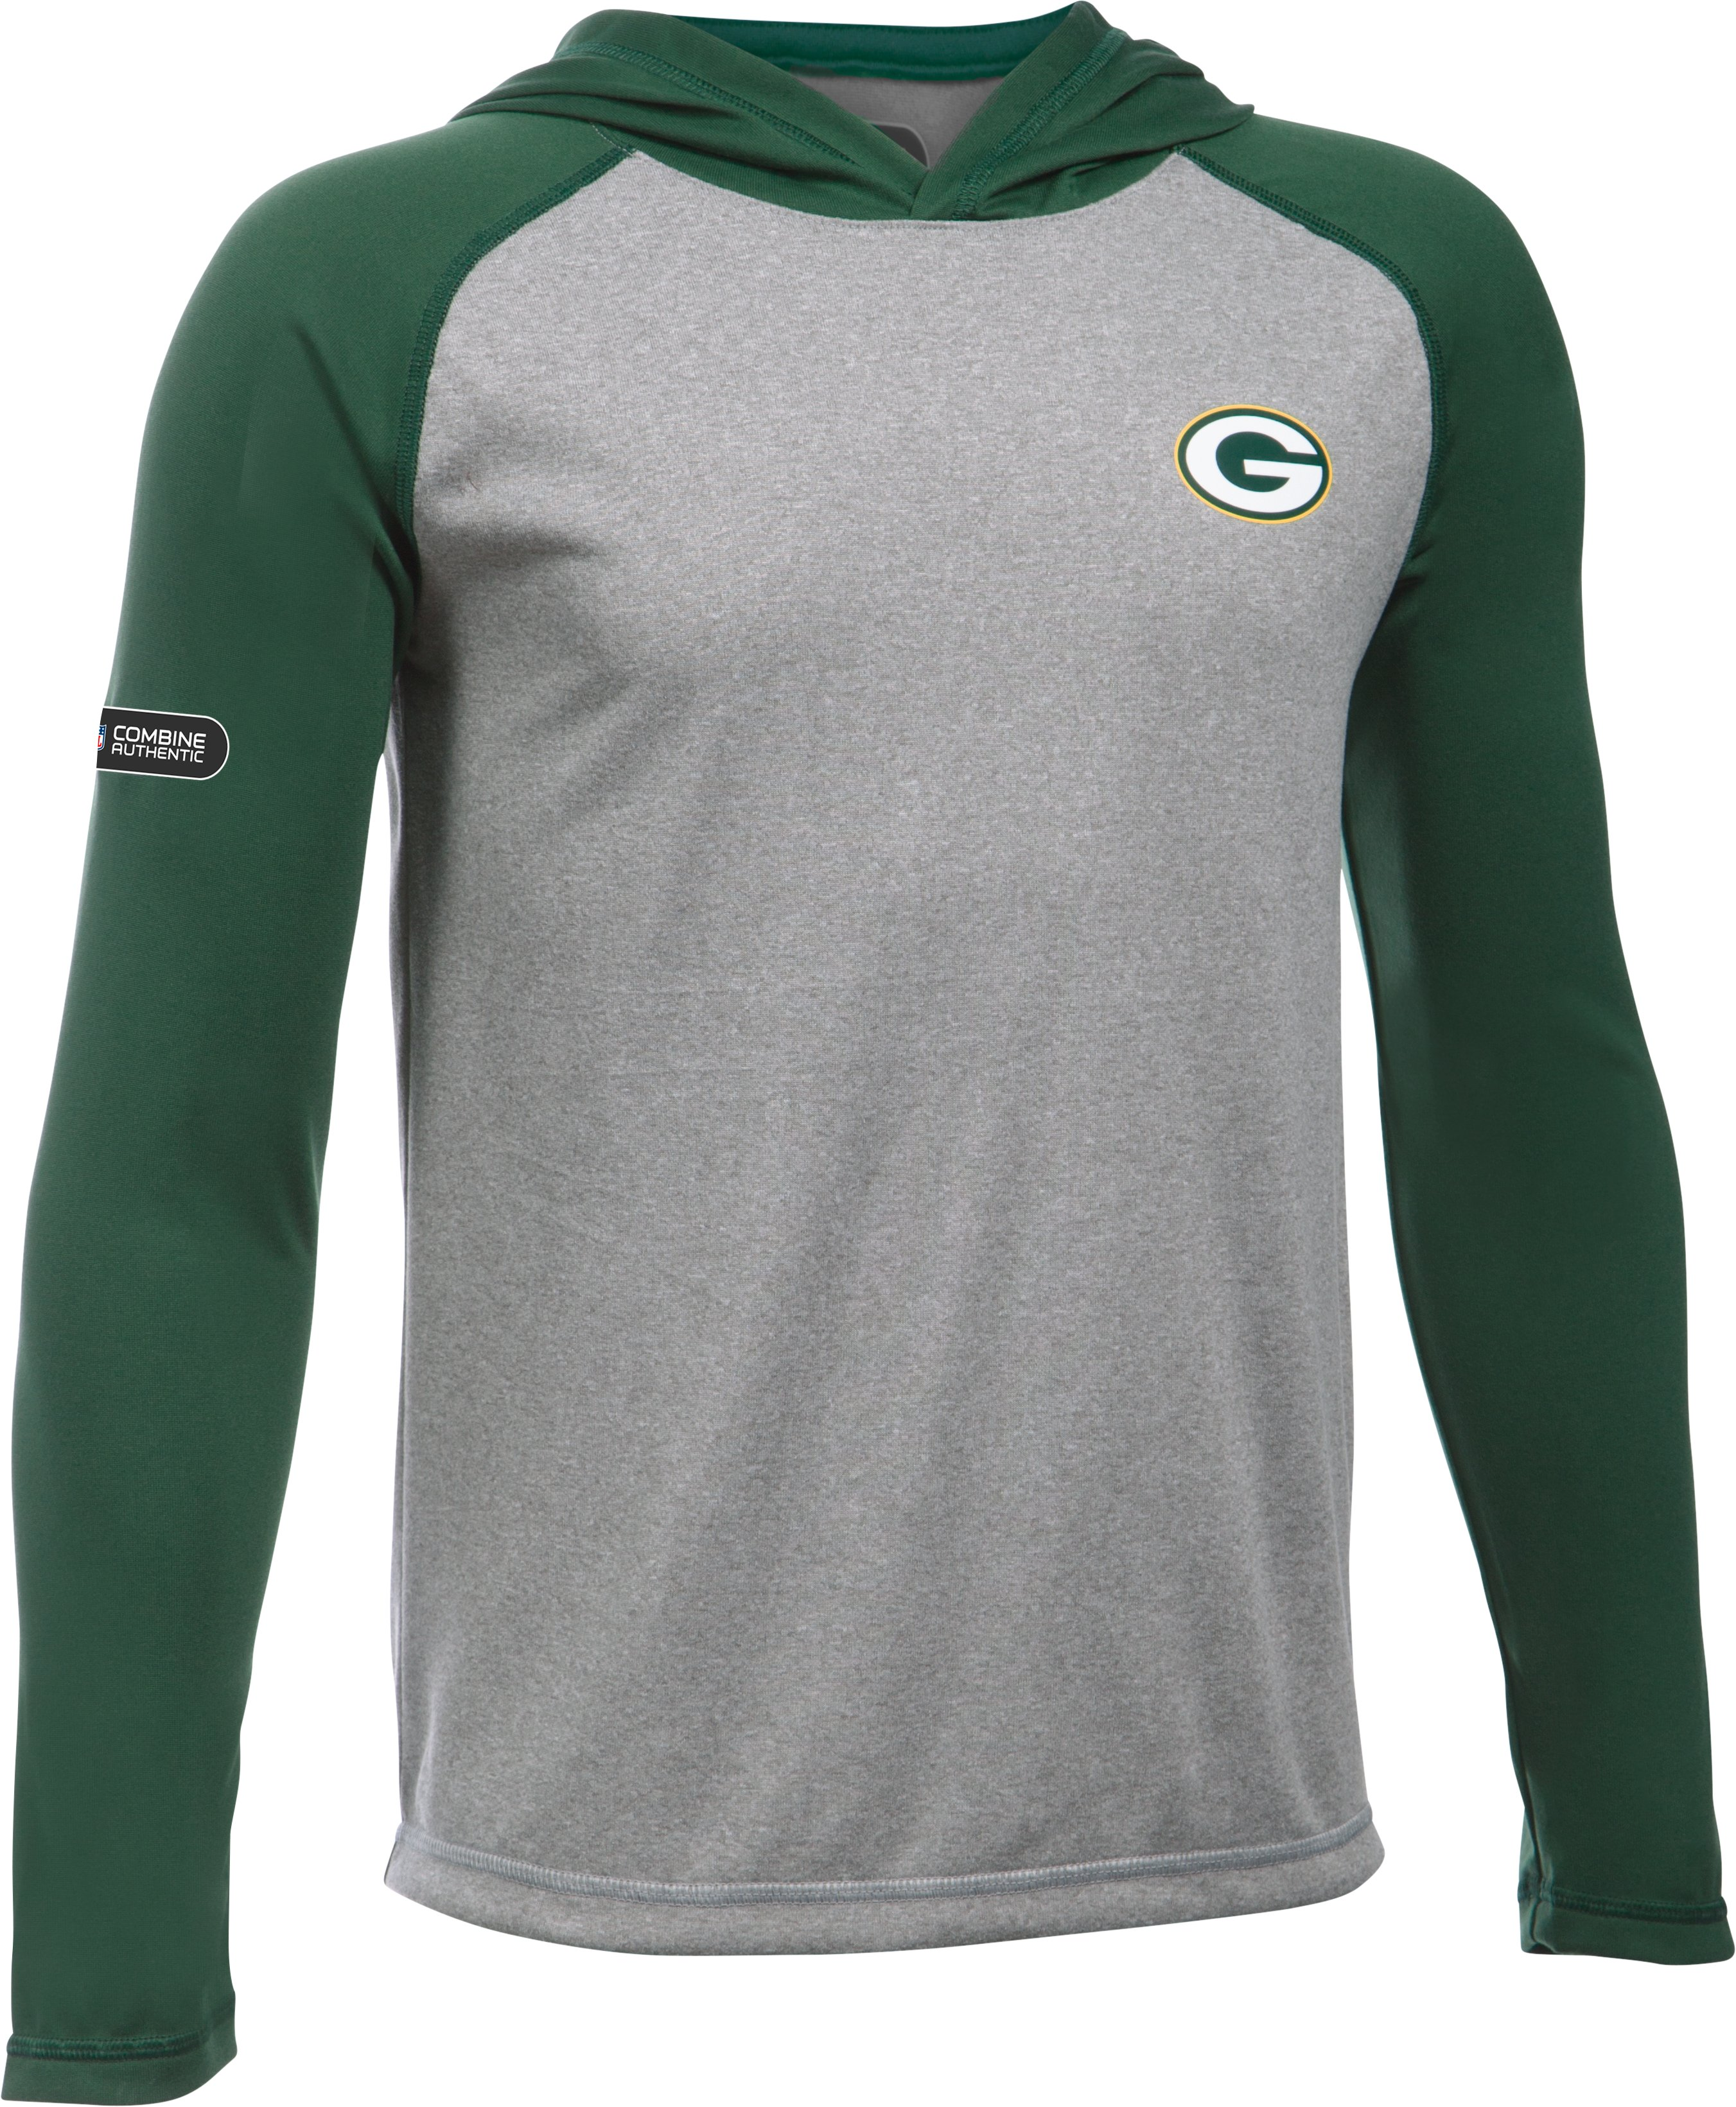 Boys' NFL Combine Authentic UA Tech™ Hoodie, Green Bay Packers